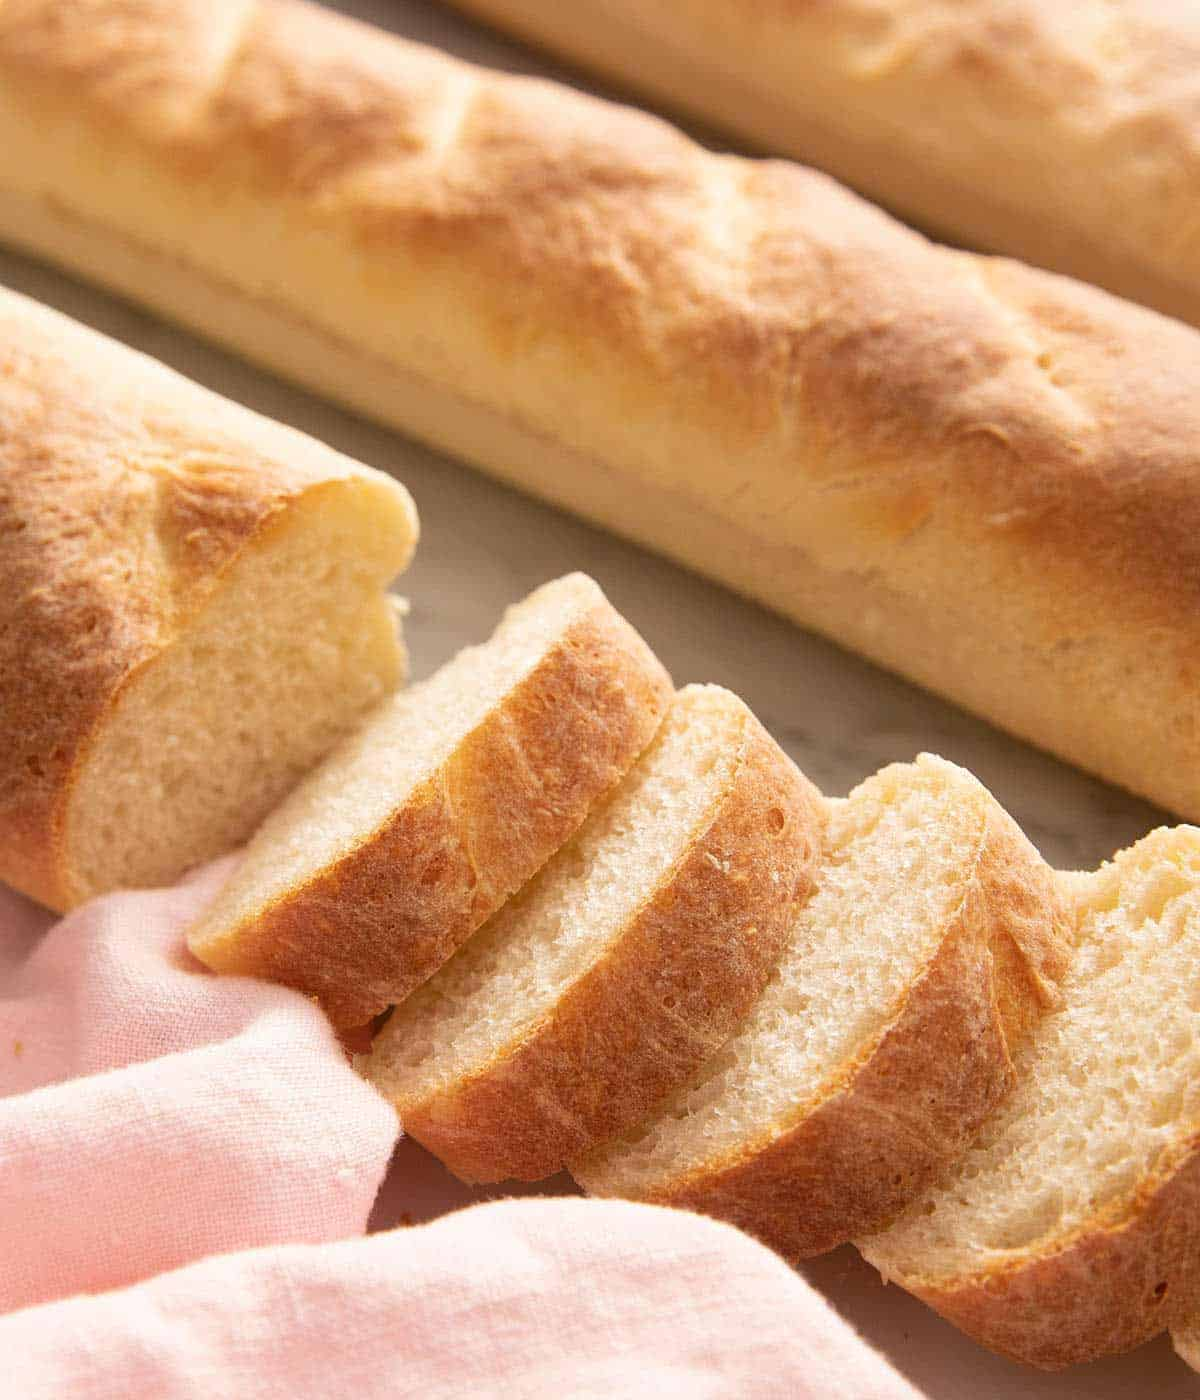 A close up of French bread cut into slices